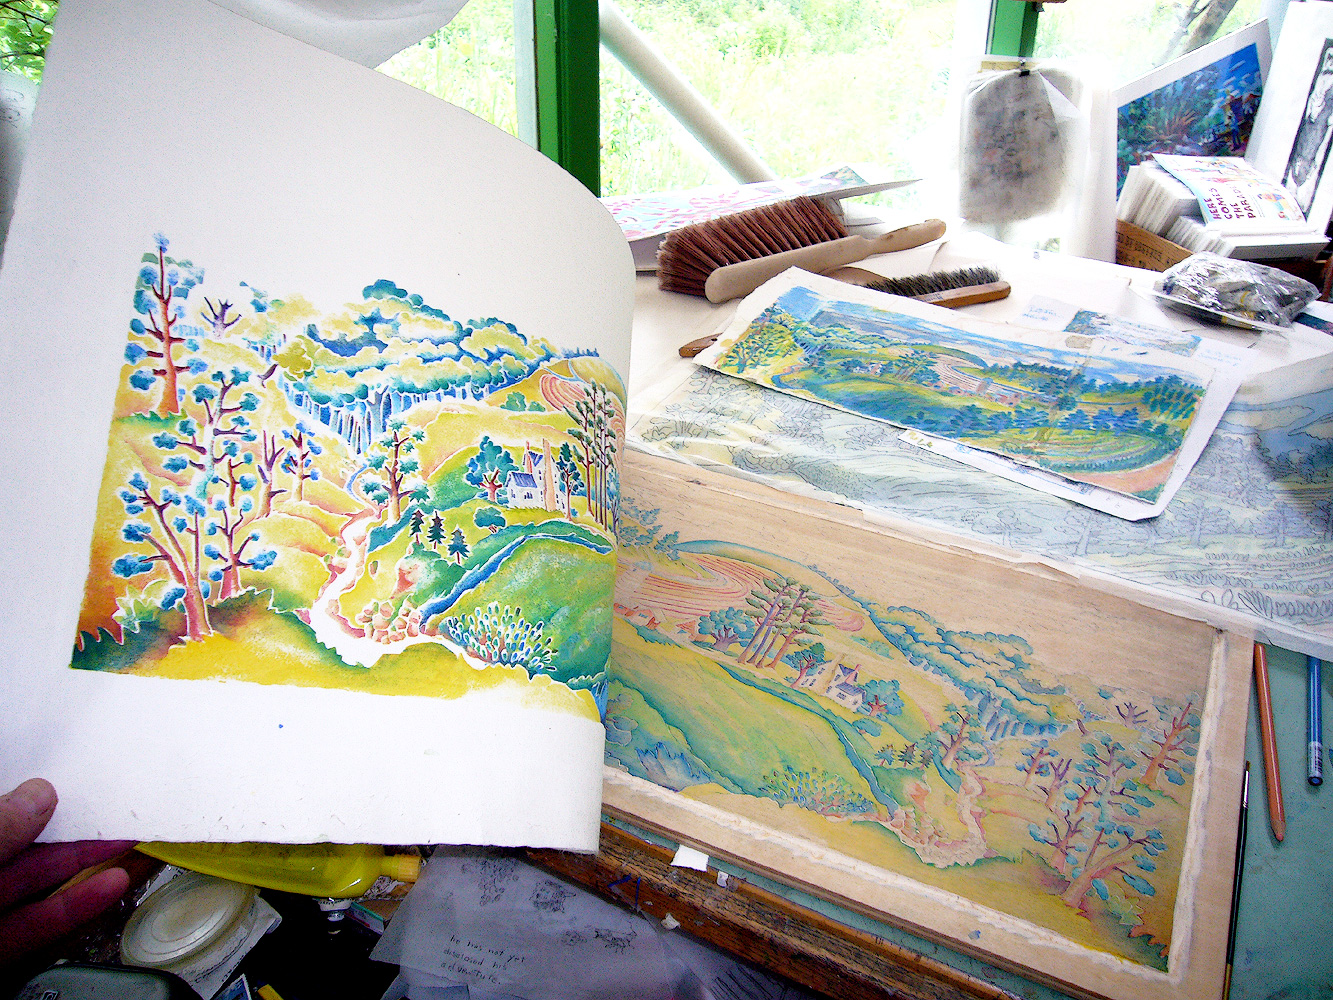 On the tour, visitors might see in-progress pieces, such as Linda Kelen's print I Live Here. Photo Courtesy of The Fall Art Tour.